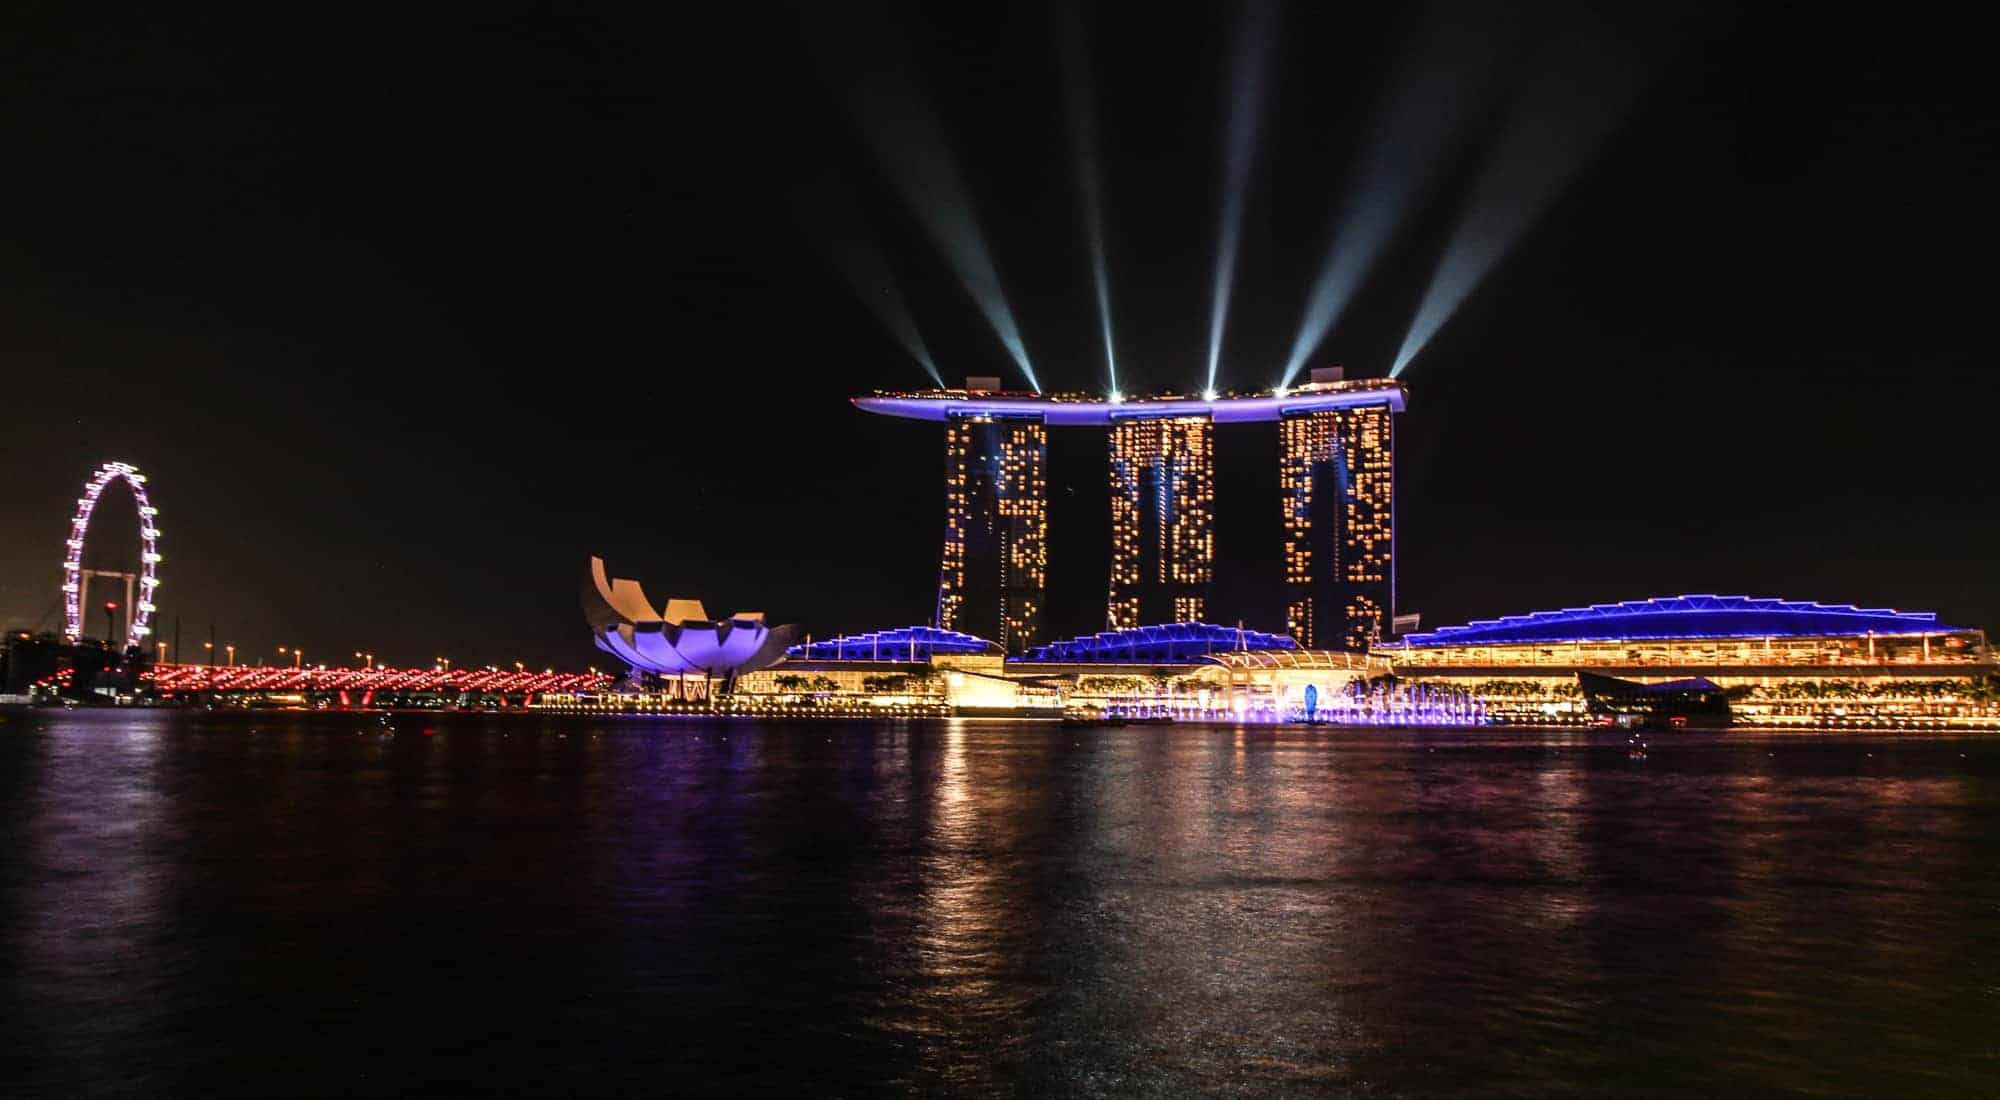 Marina Bay Sands Lightshow